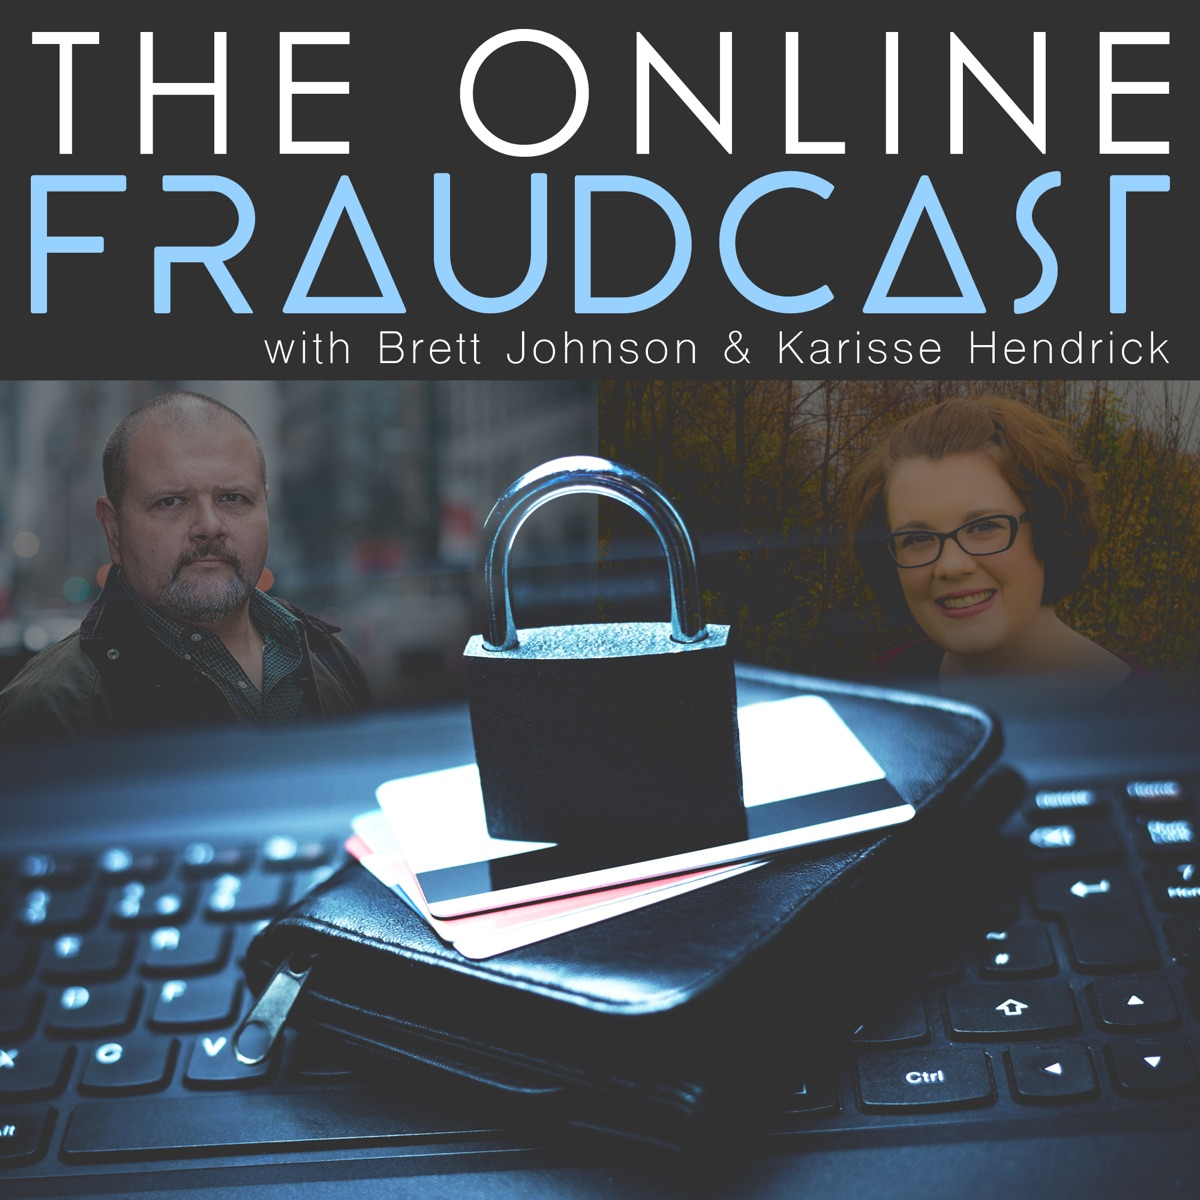 Episode 22: Why Cybercrime Succeeds - A Look at Dell and the Paycheck Protection Program